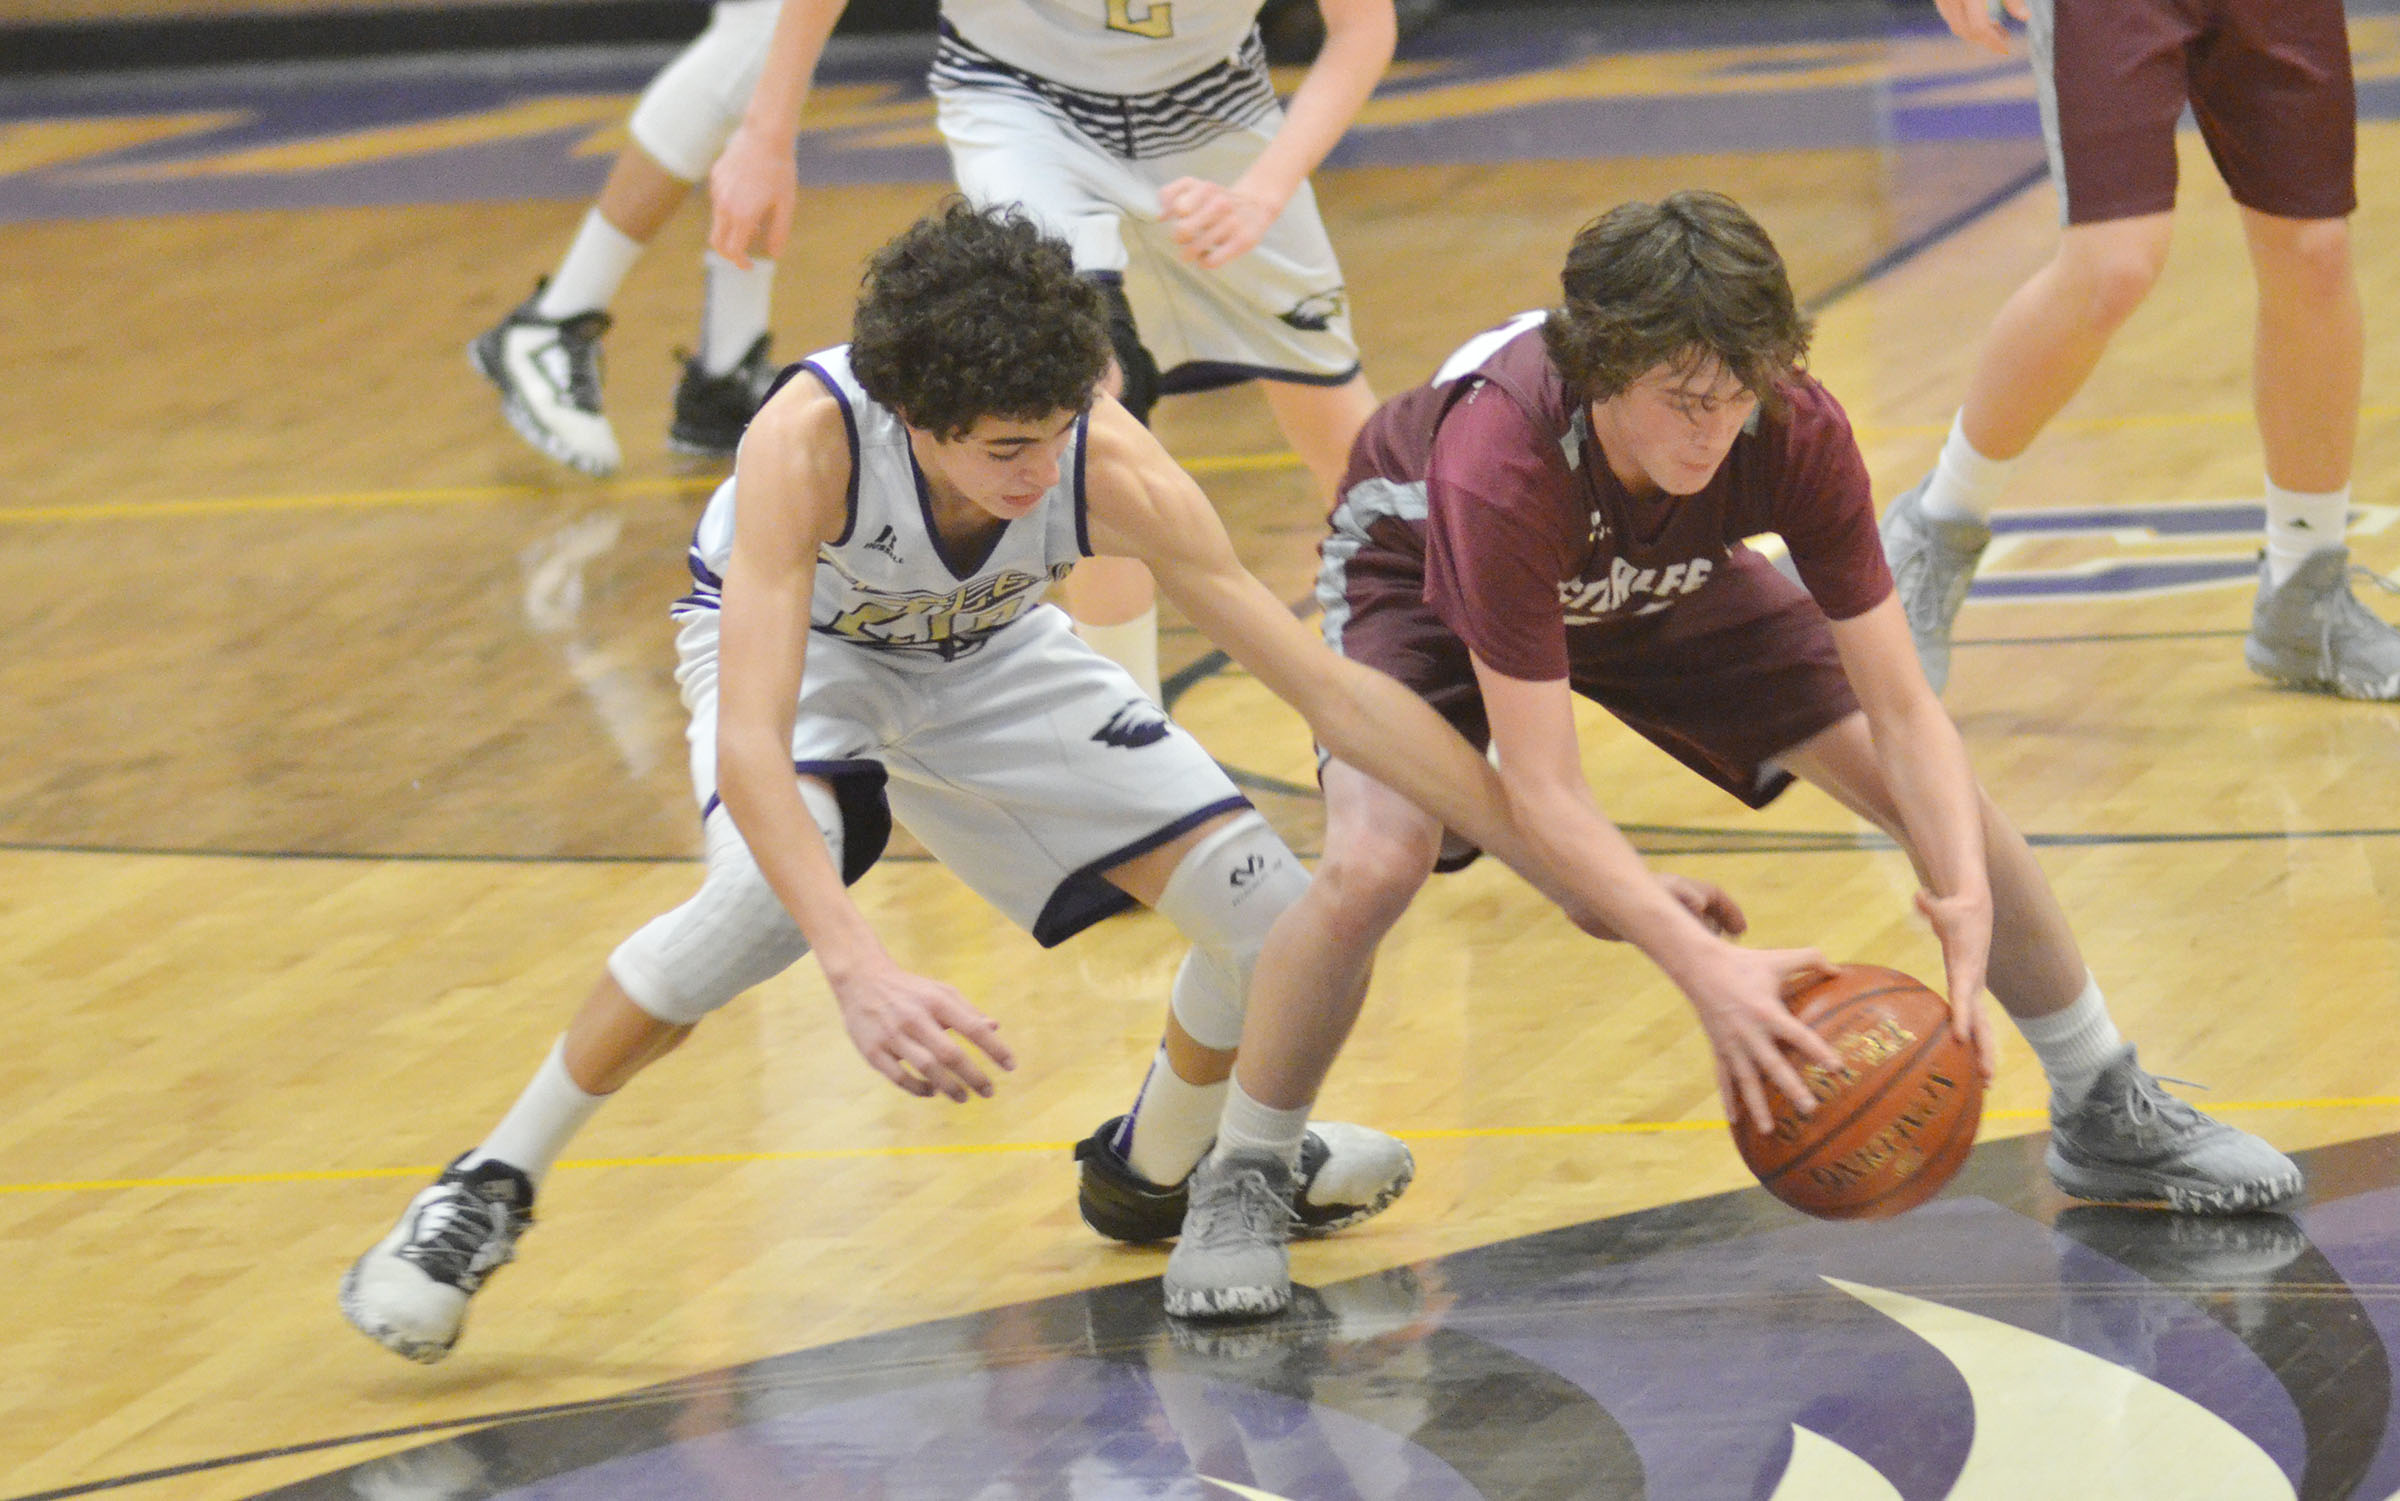 CMS eighth-grader Kameron Smith battles for the ball.